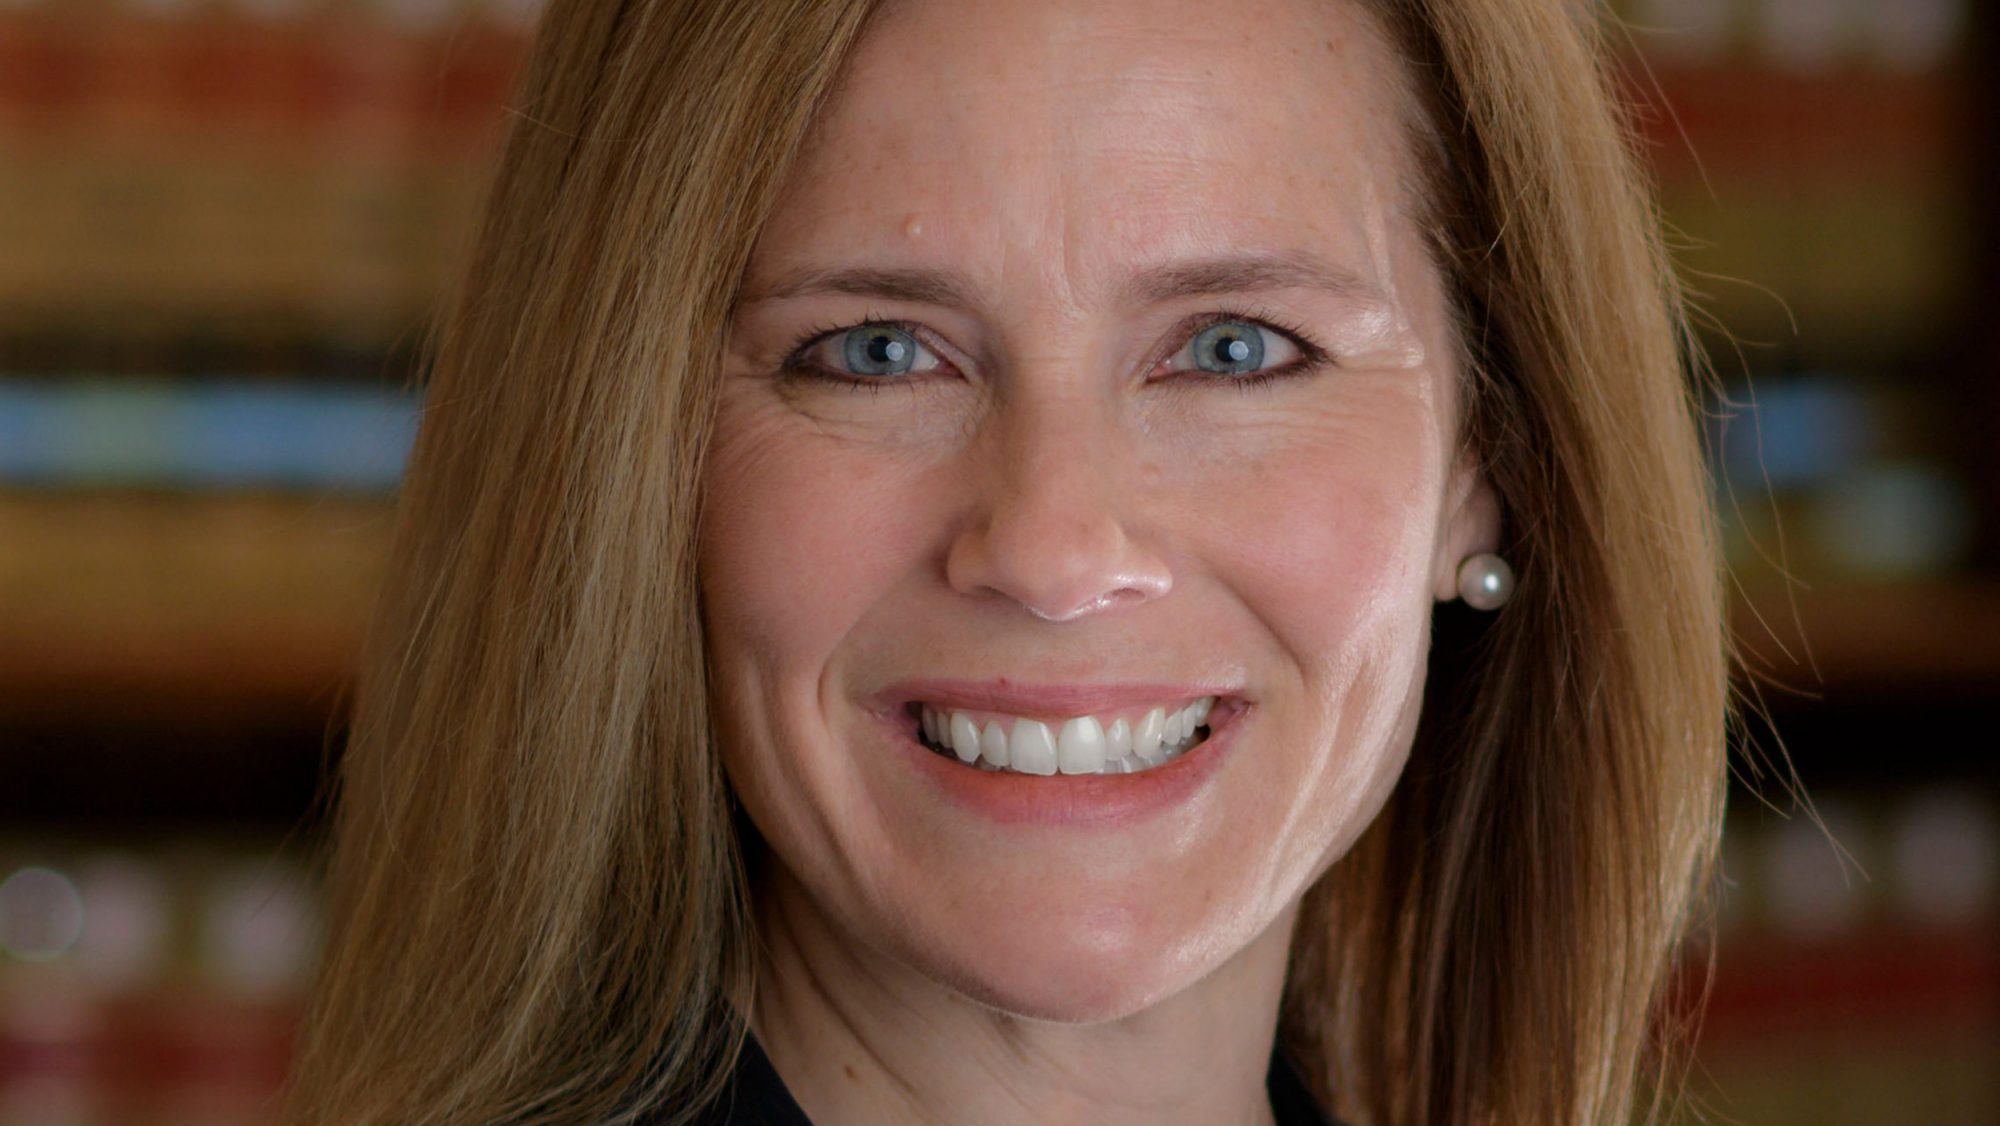 NEWS: Who Is Amy Coney Barrett?